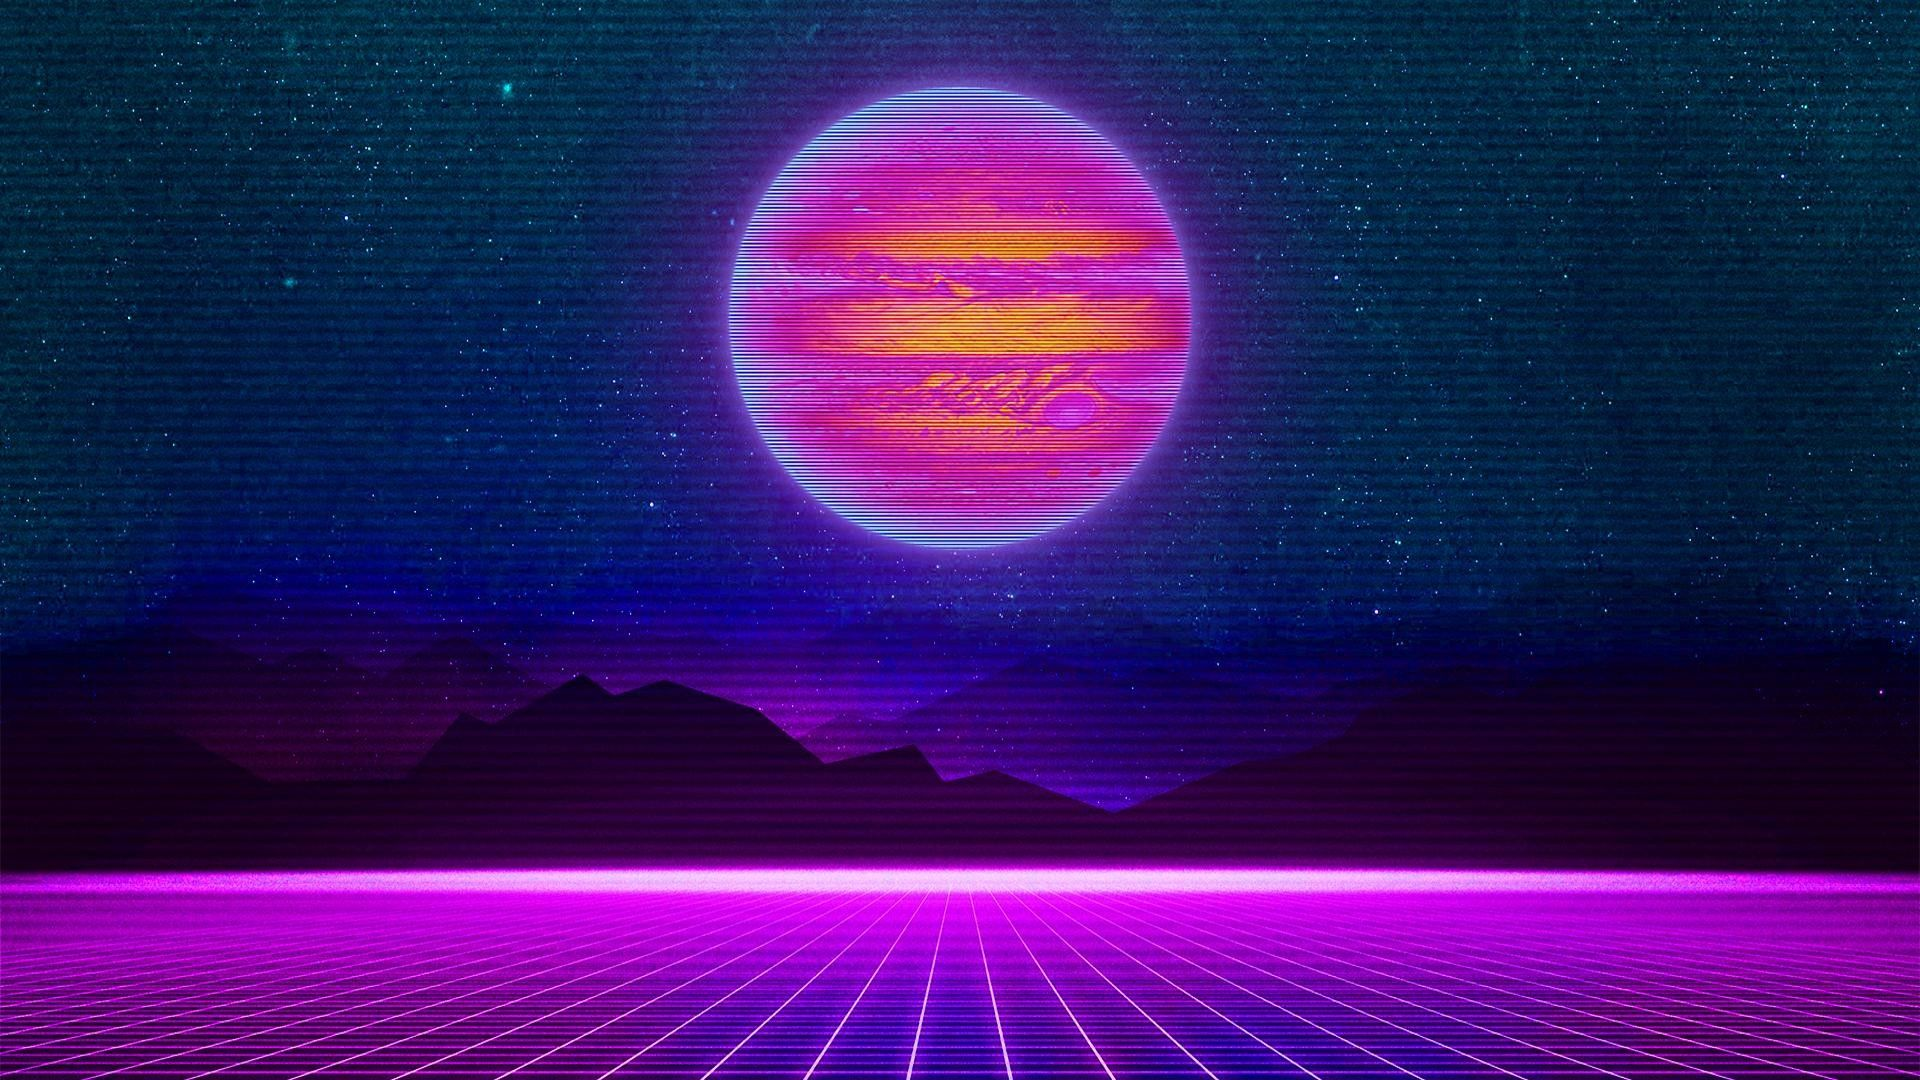 75 Synthwave Wallpapers On Wallpaperplay Synthwave Waves Wallpaper Glitch Wallpaper